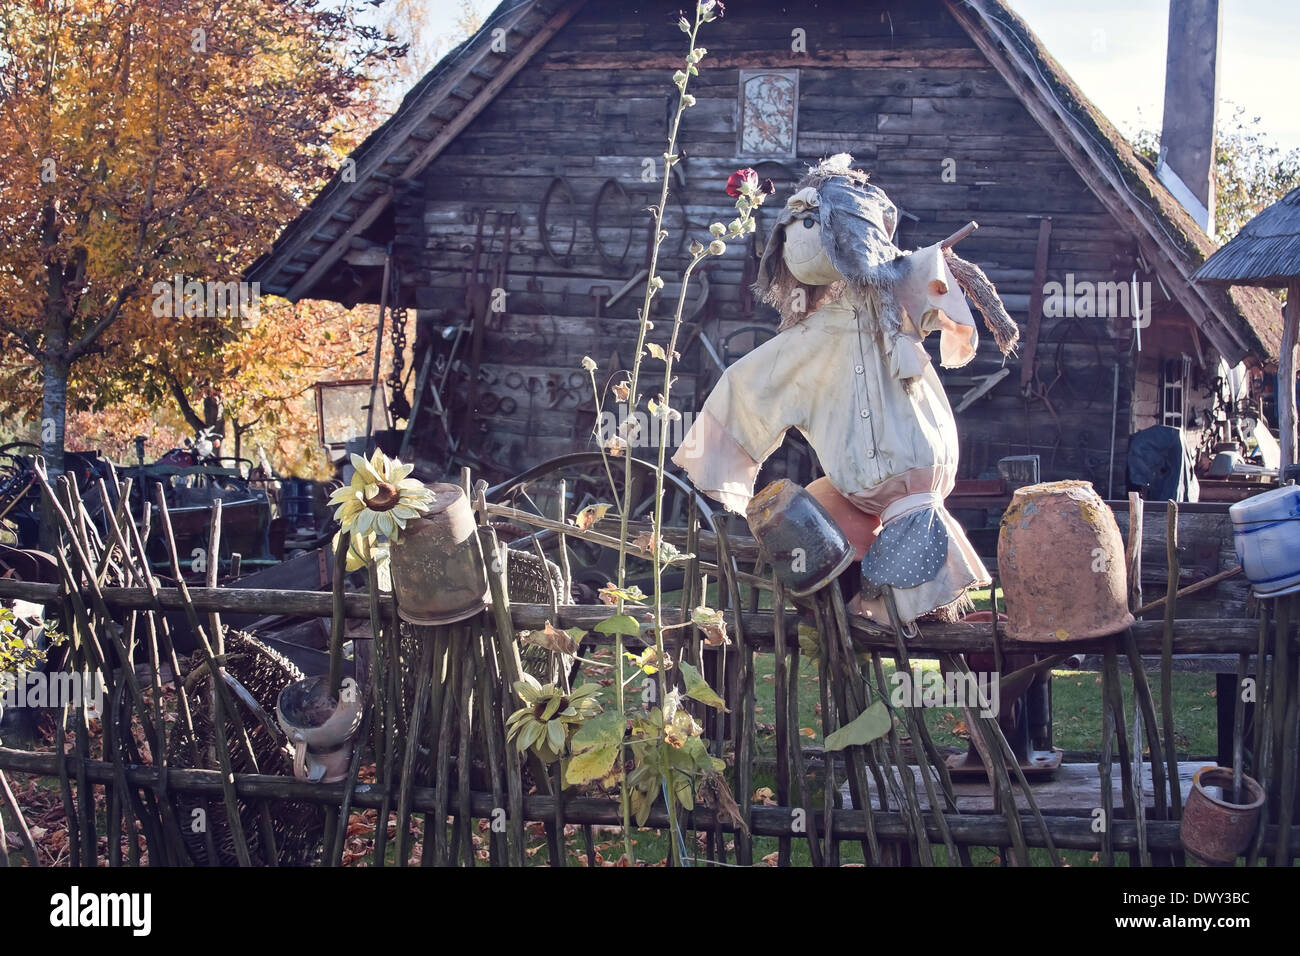 scarecrow on a fence, old wooden house in a background - Stock Image